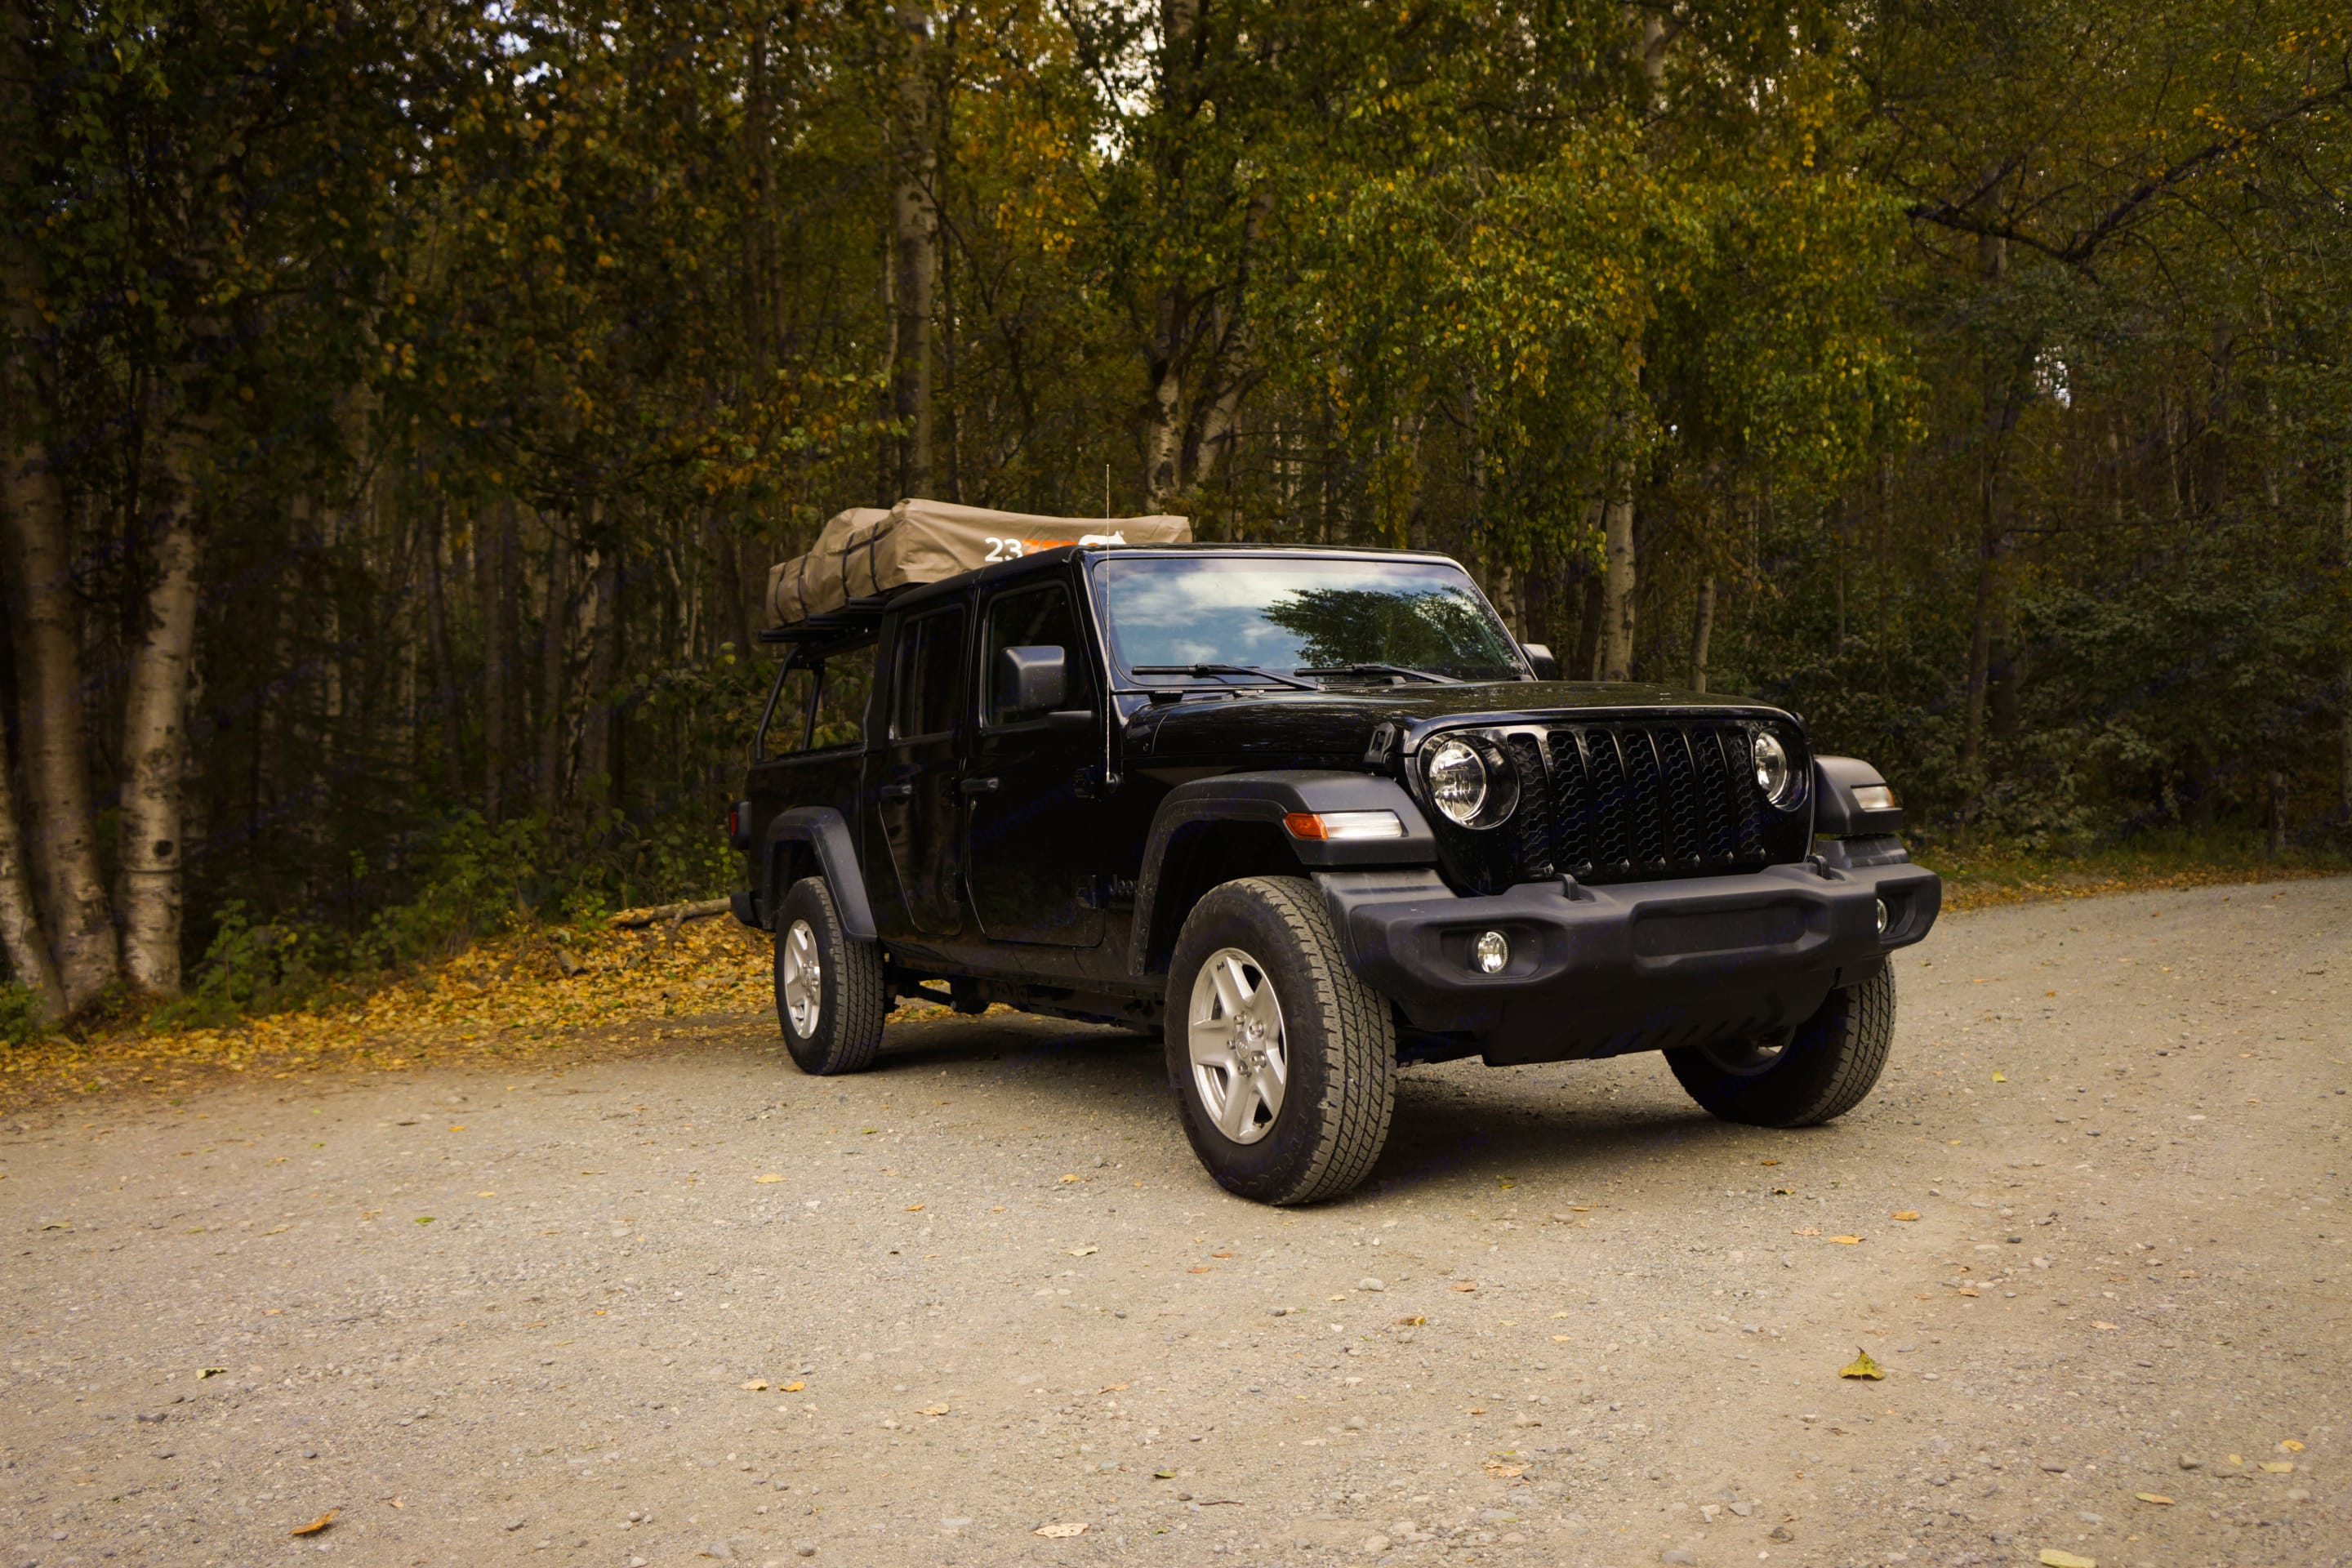 With tent packed up. Jeep Gladiator 2020